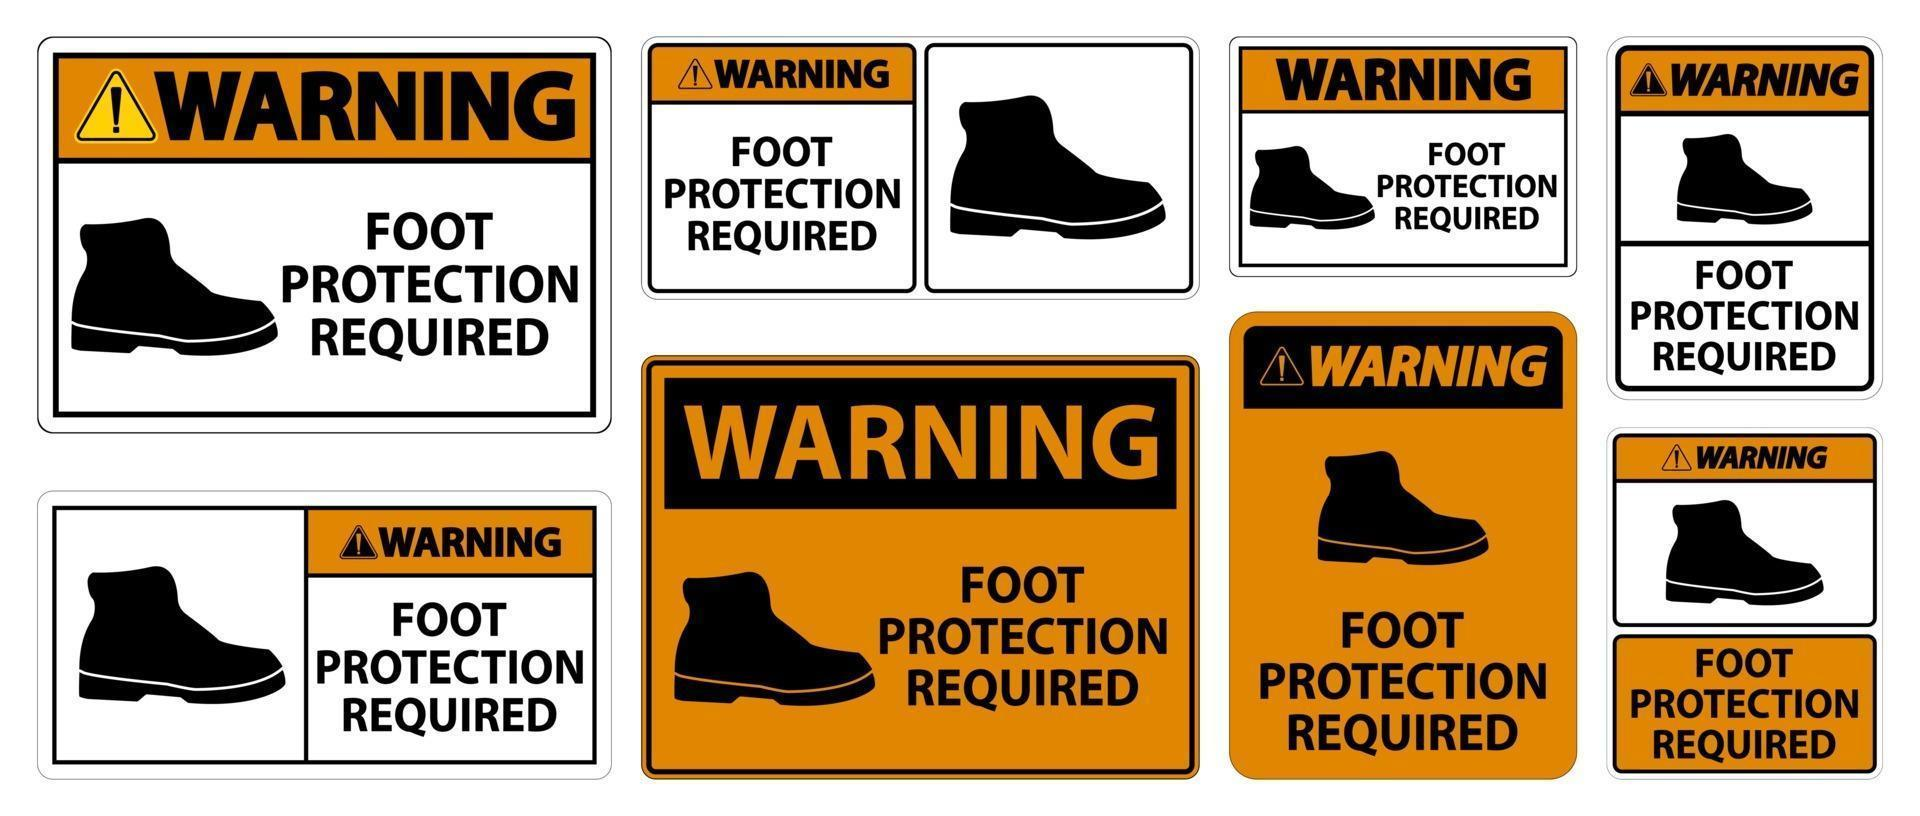 Warning Foot Protection Required Wall Symbol Signs vector